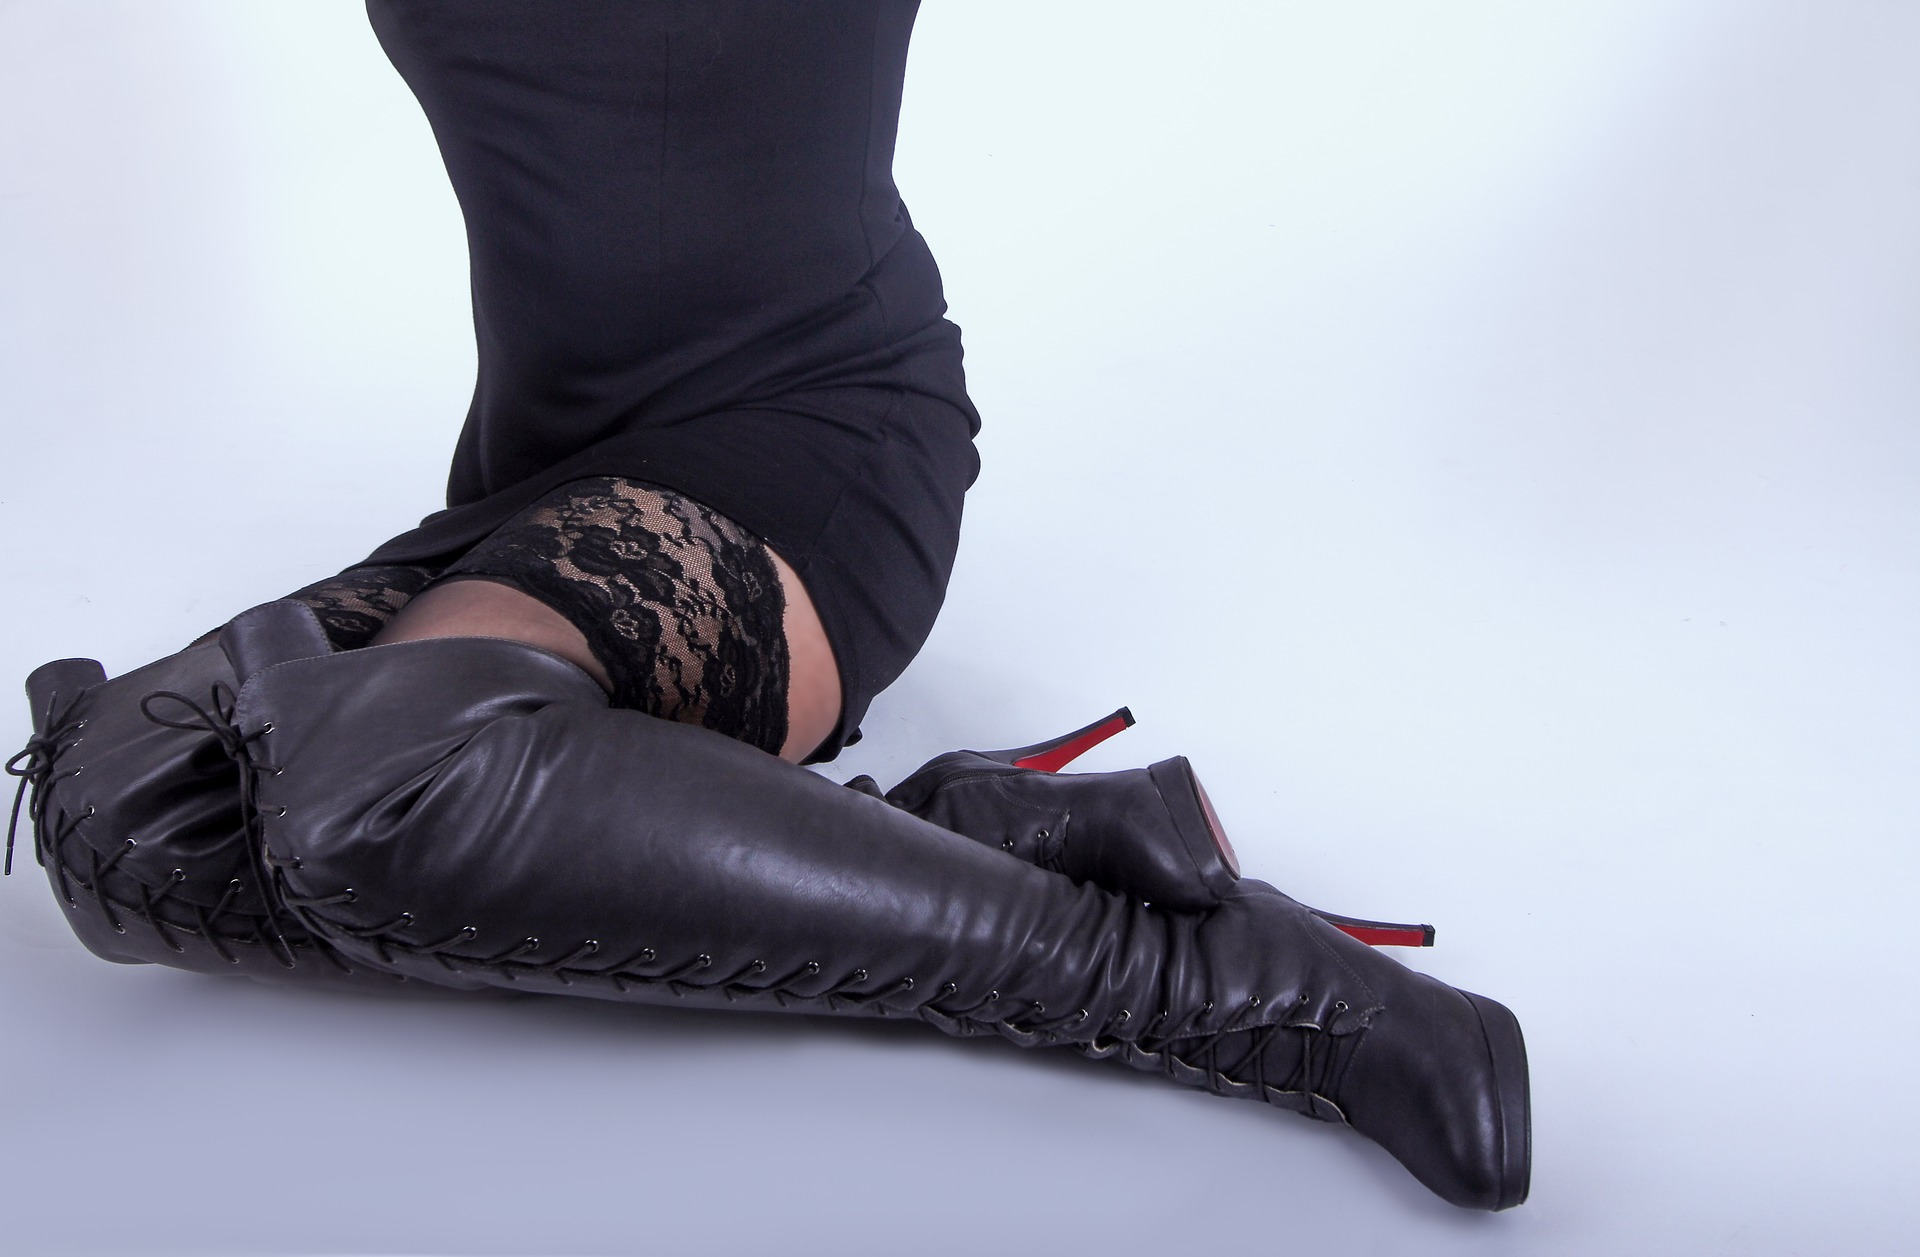 boots-3849581_1920